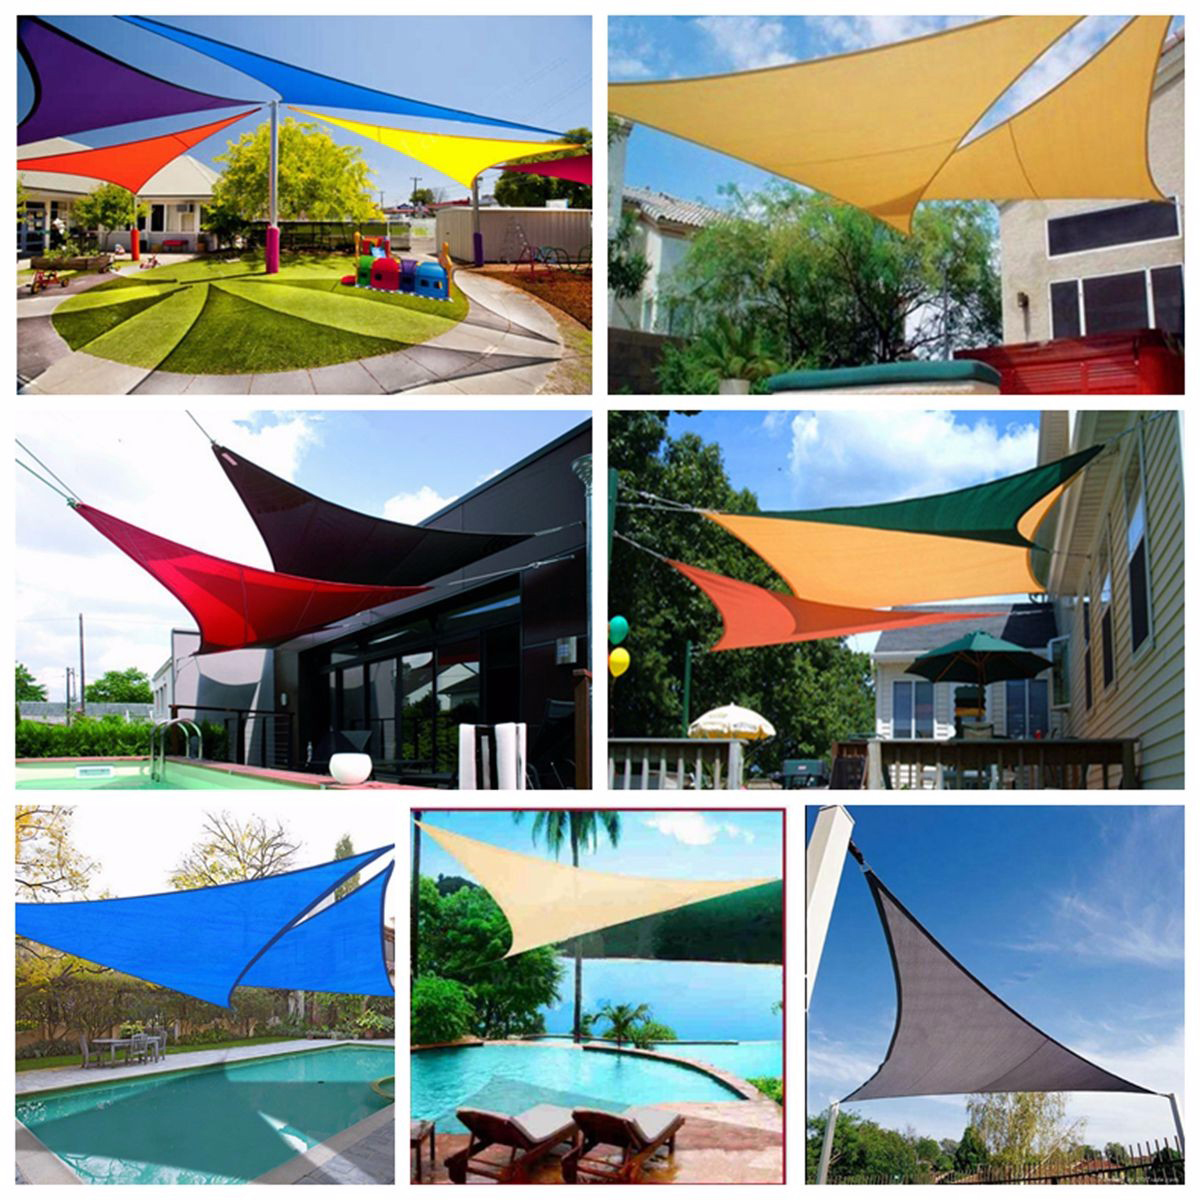 300D 160GSM Sun Shade Sail Waterproof UV Garden Patio Awning Canopy Tent Sunshade Shelter Outdoor Camping